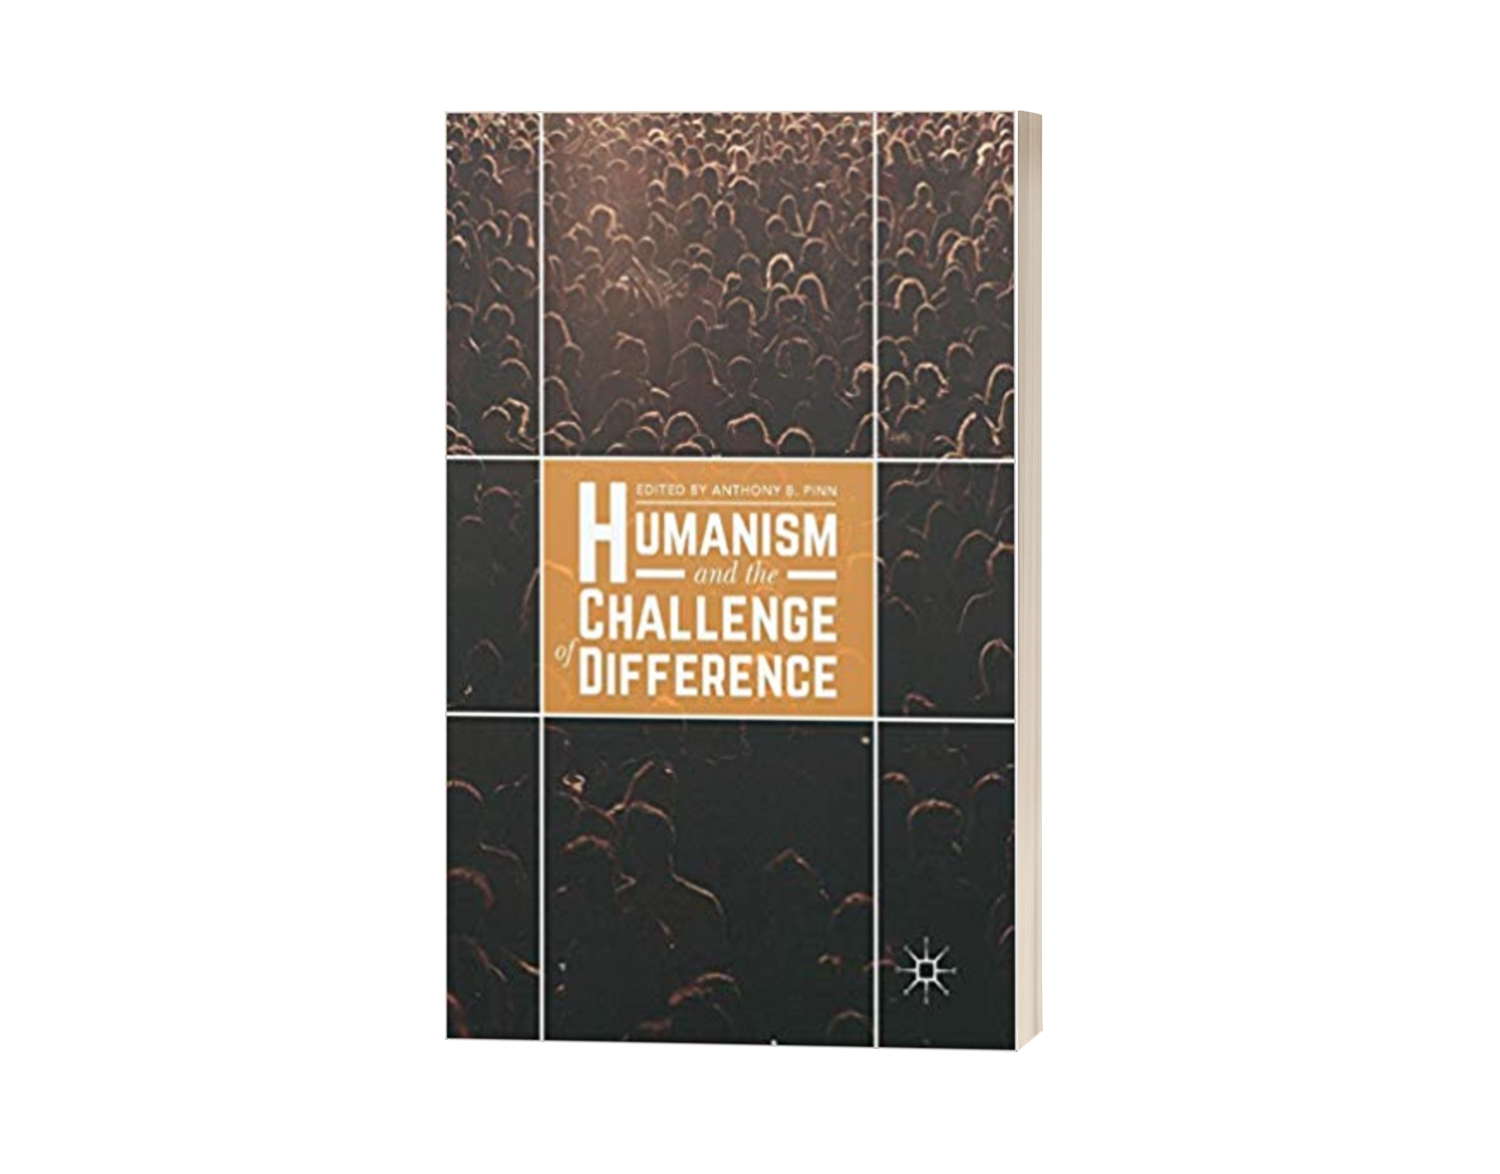 Humanism and the Challenge of Difference - Edited by Anthony B. Pinn